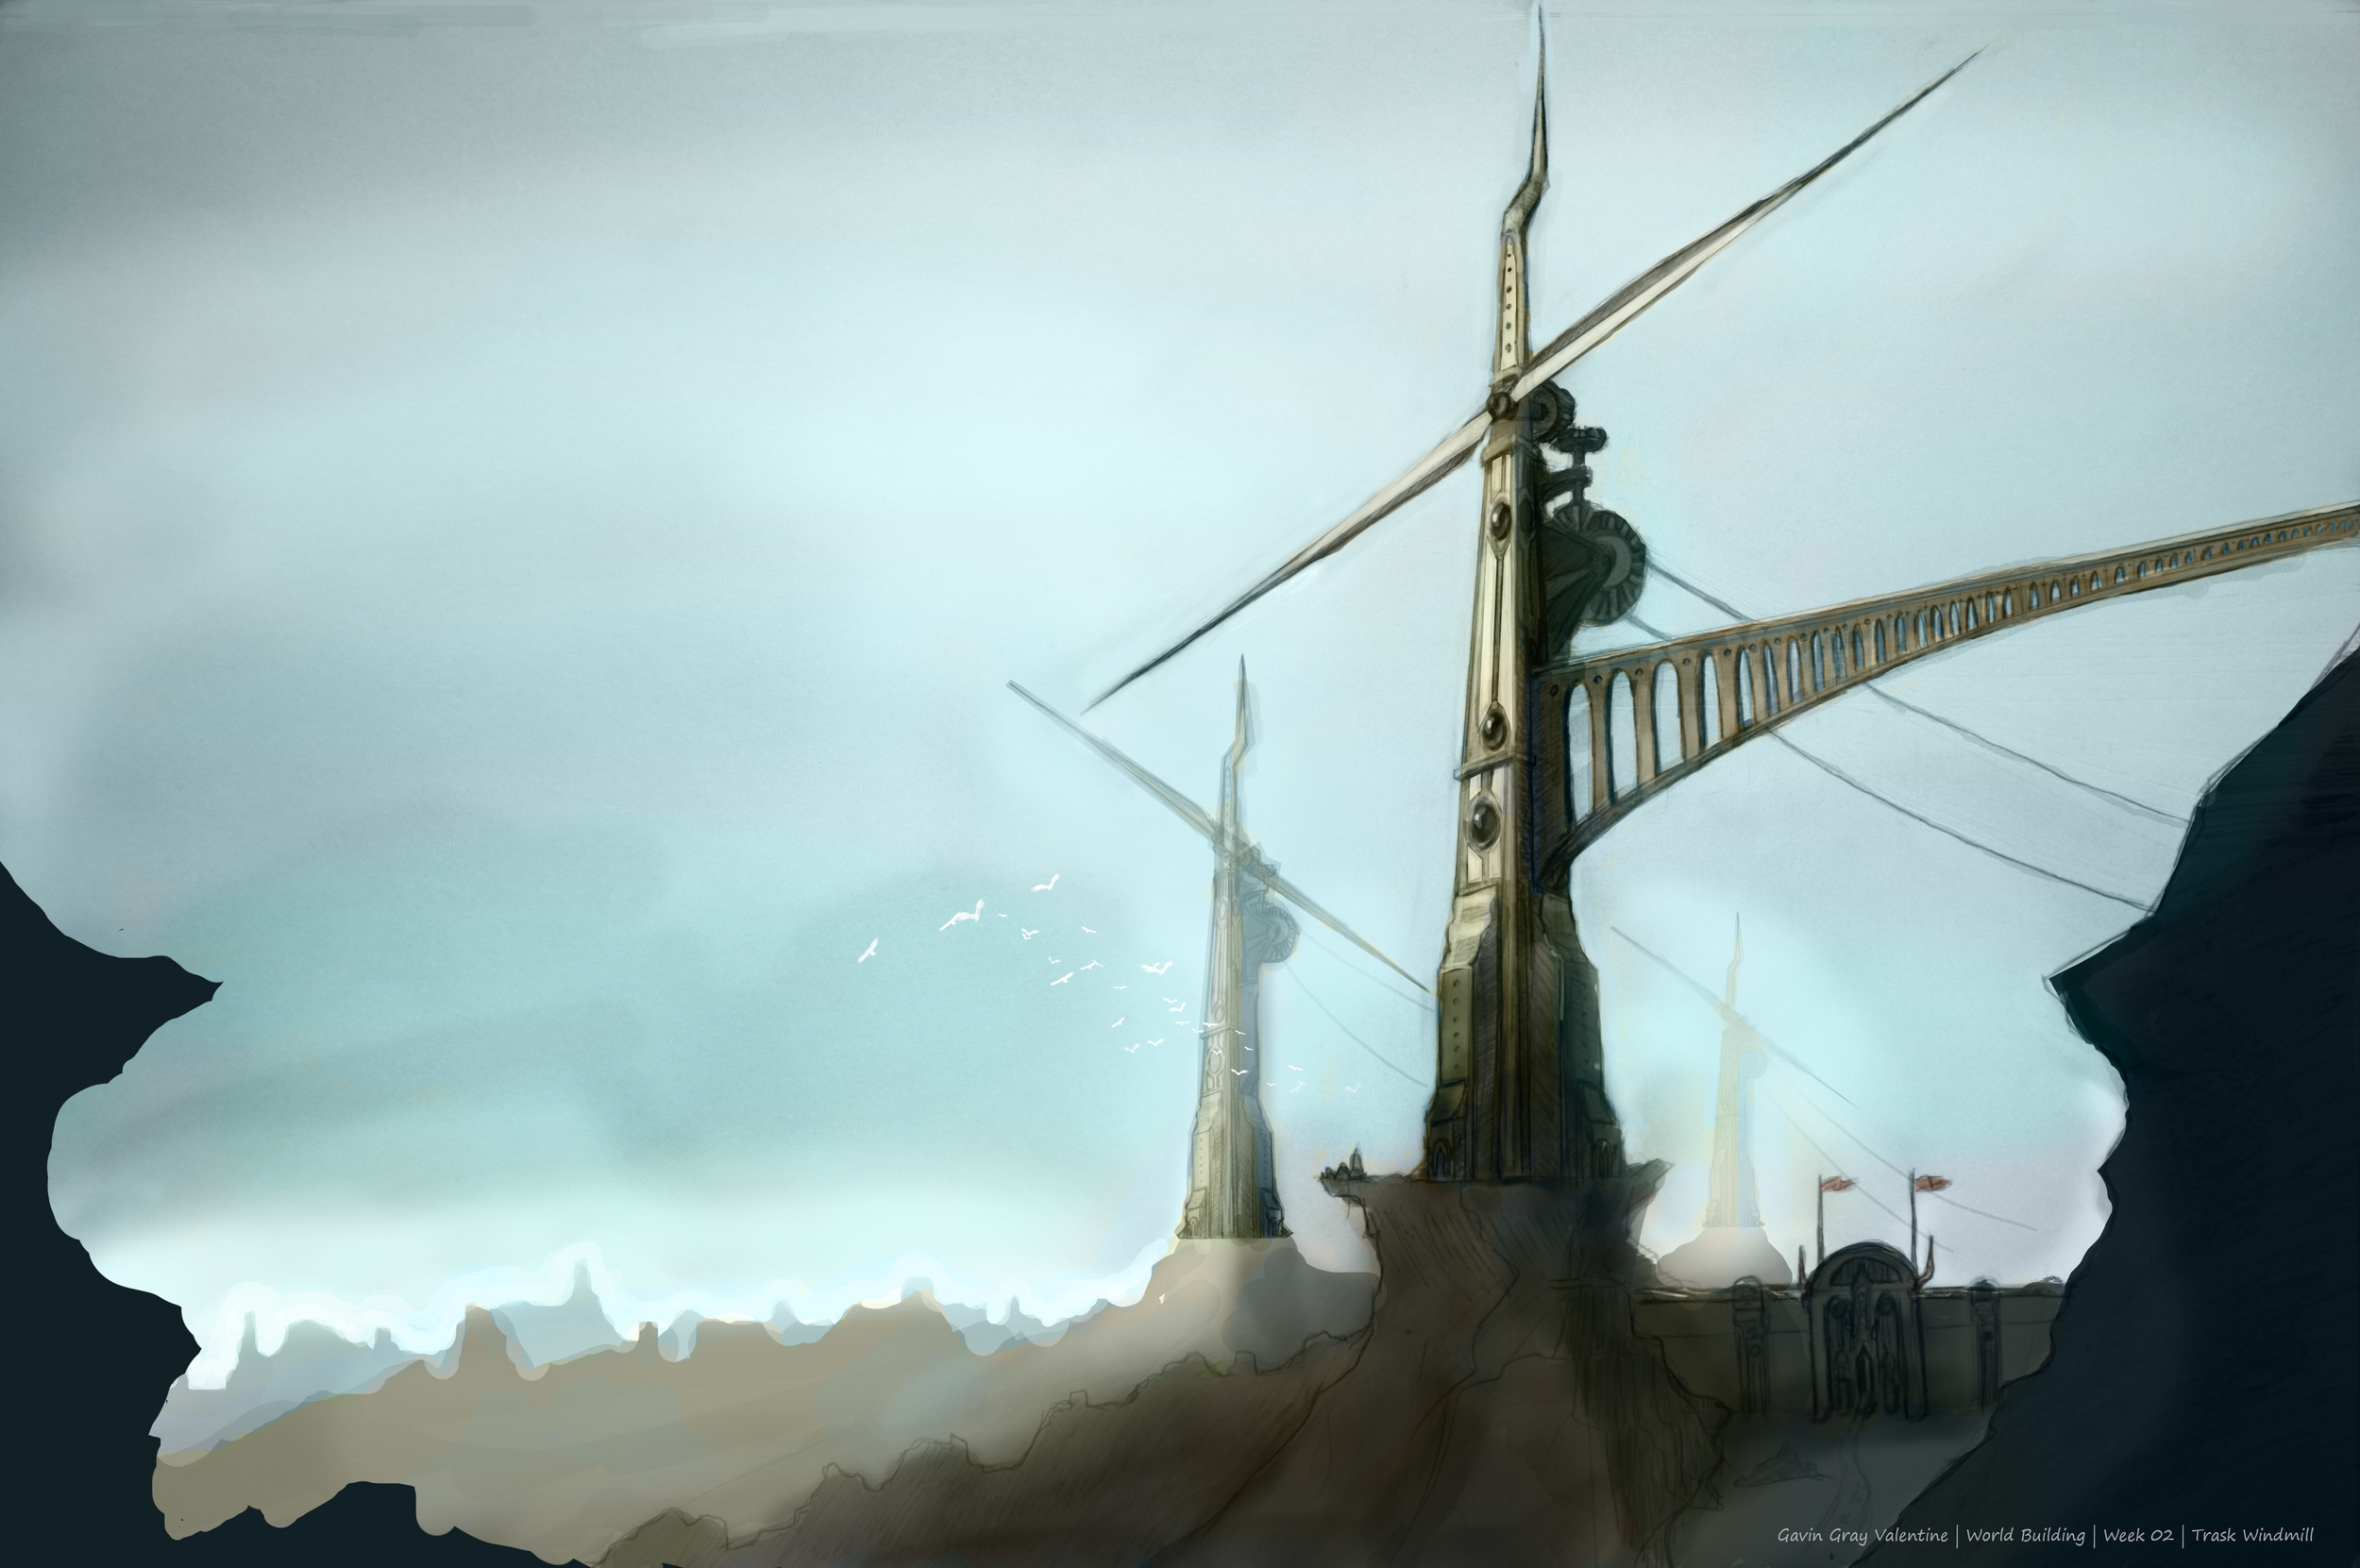 Skies of Alestria | Trask Windmills